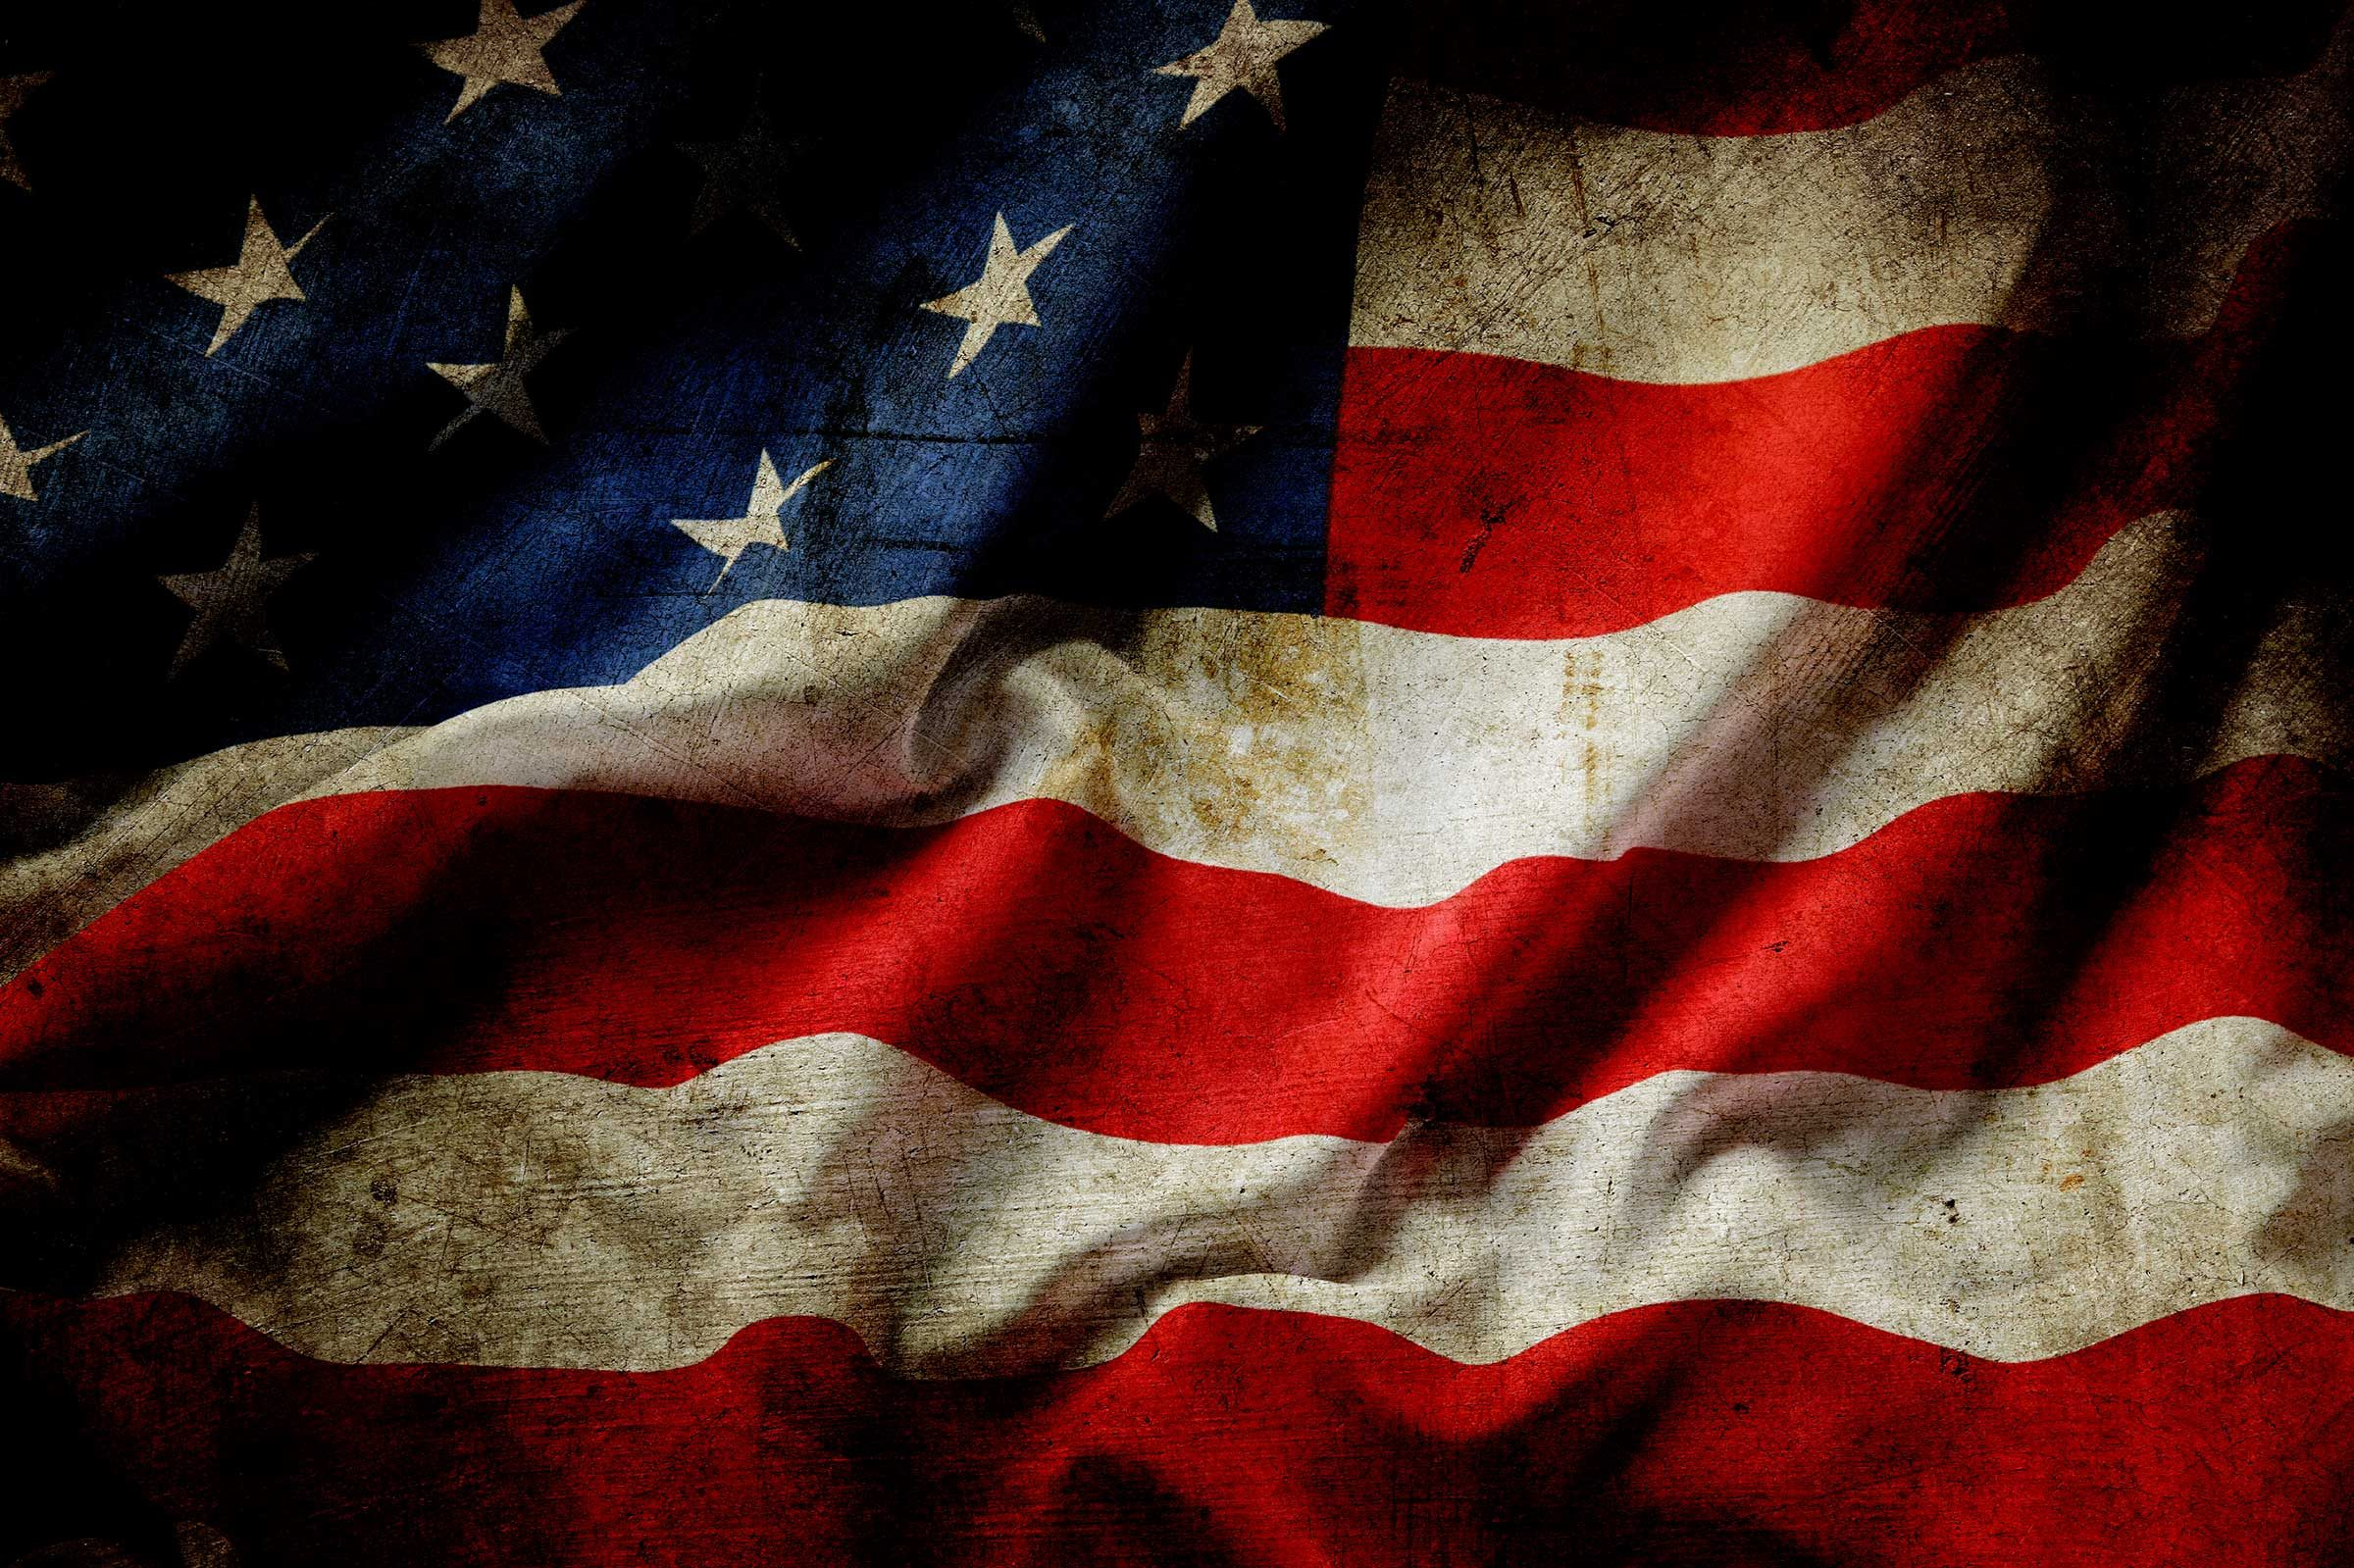 10 Facts About The Star Spangled Banner